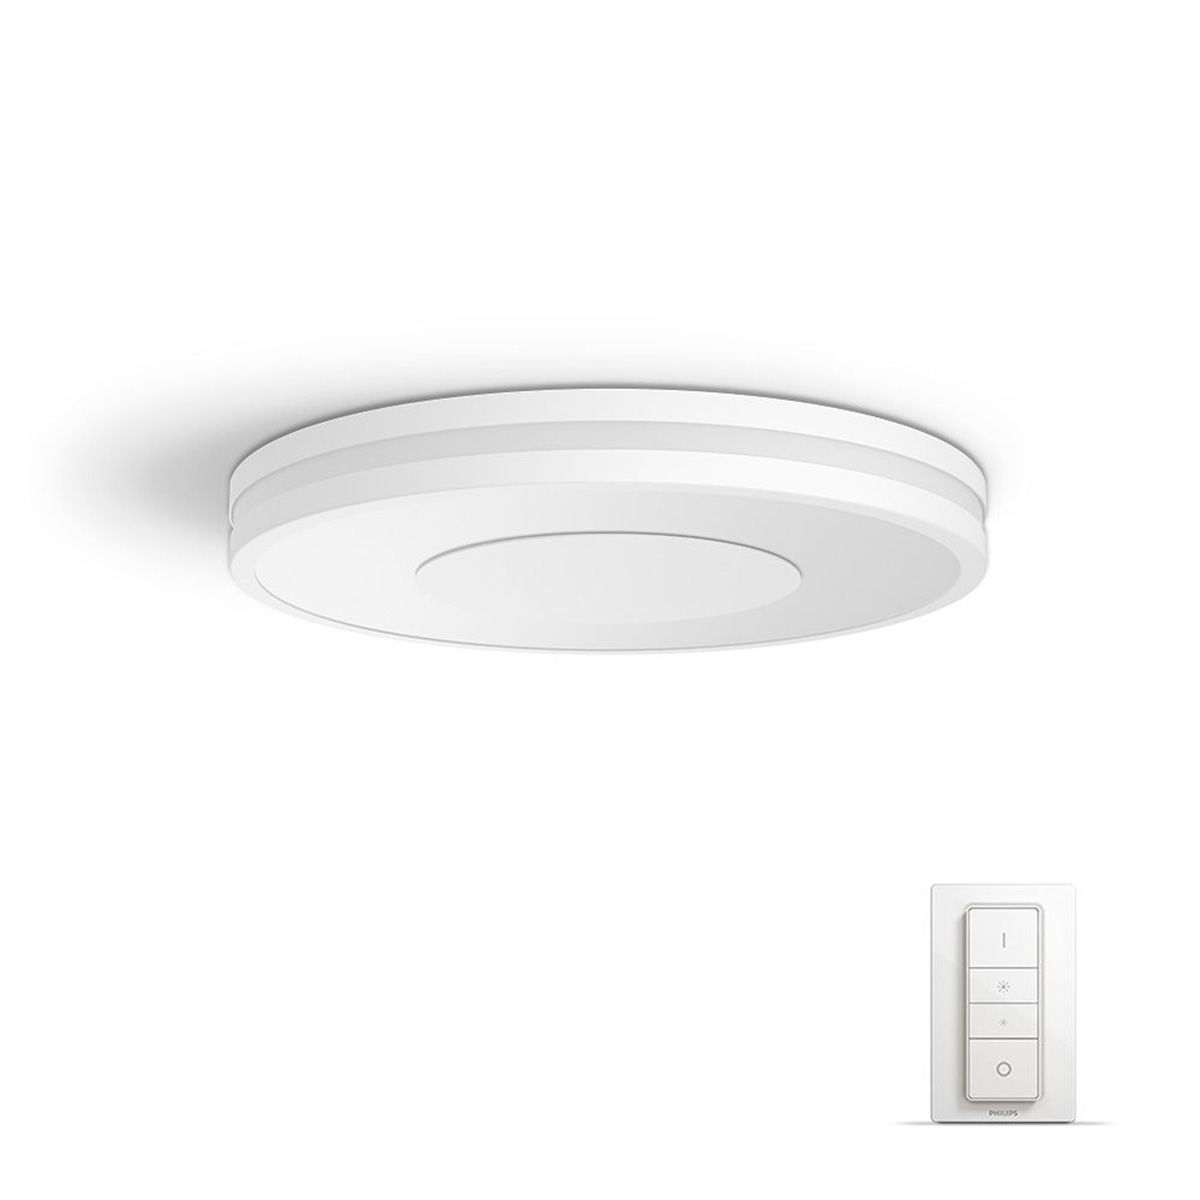 Image of   Funktionel LED-loftslampe Philips Hue Being